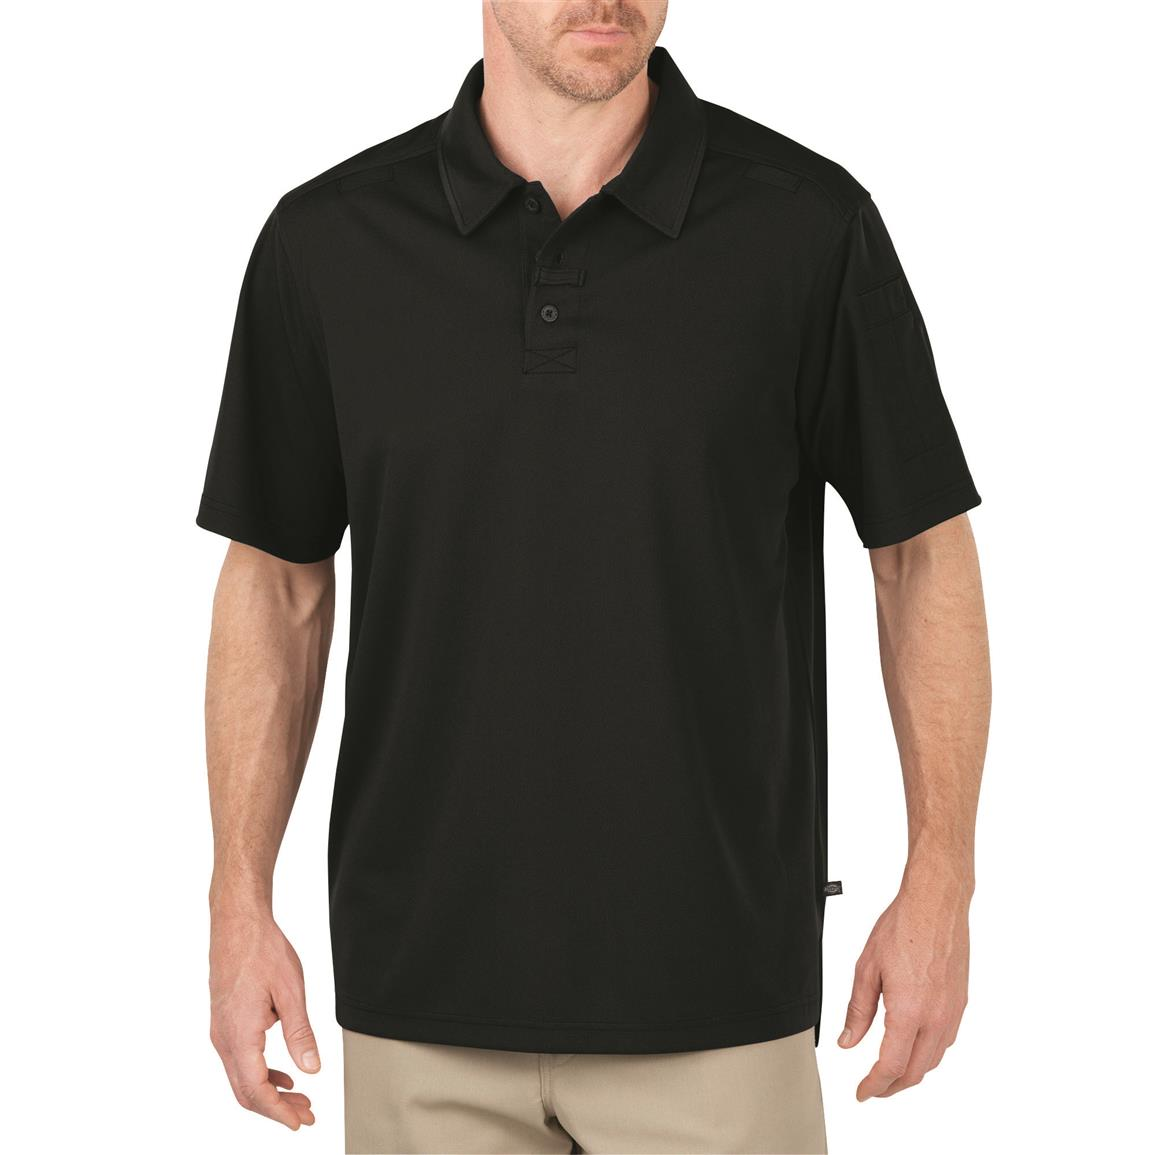 Dickies Men's Tactical Performance Polo Shirt, Black